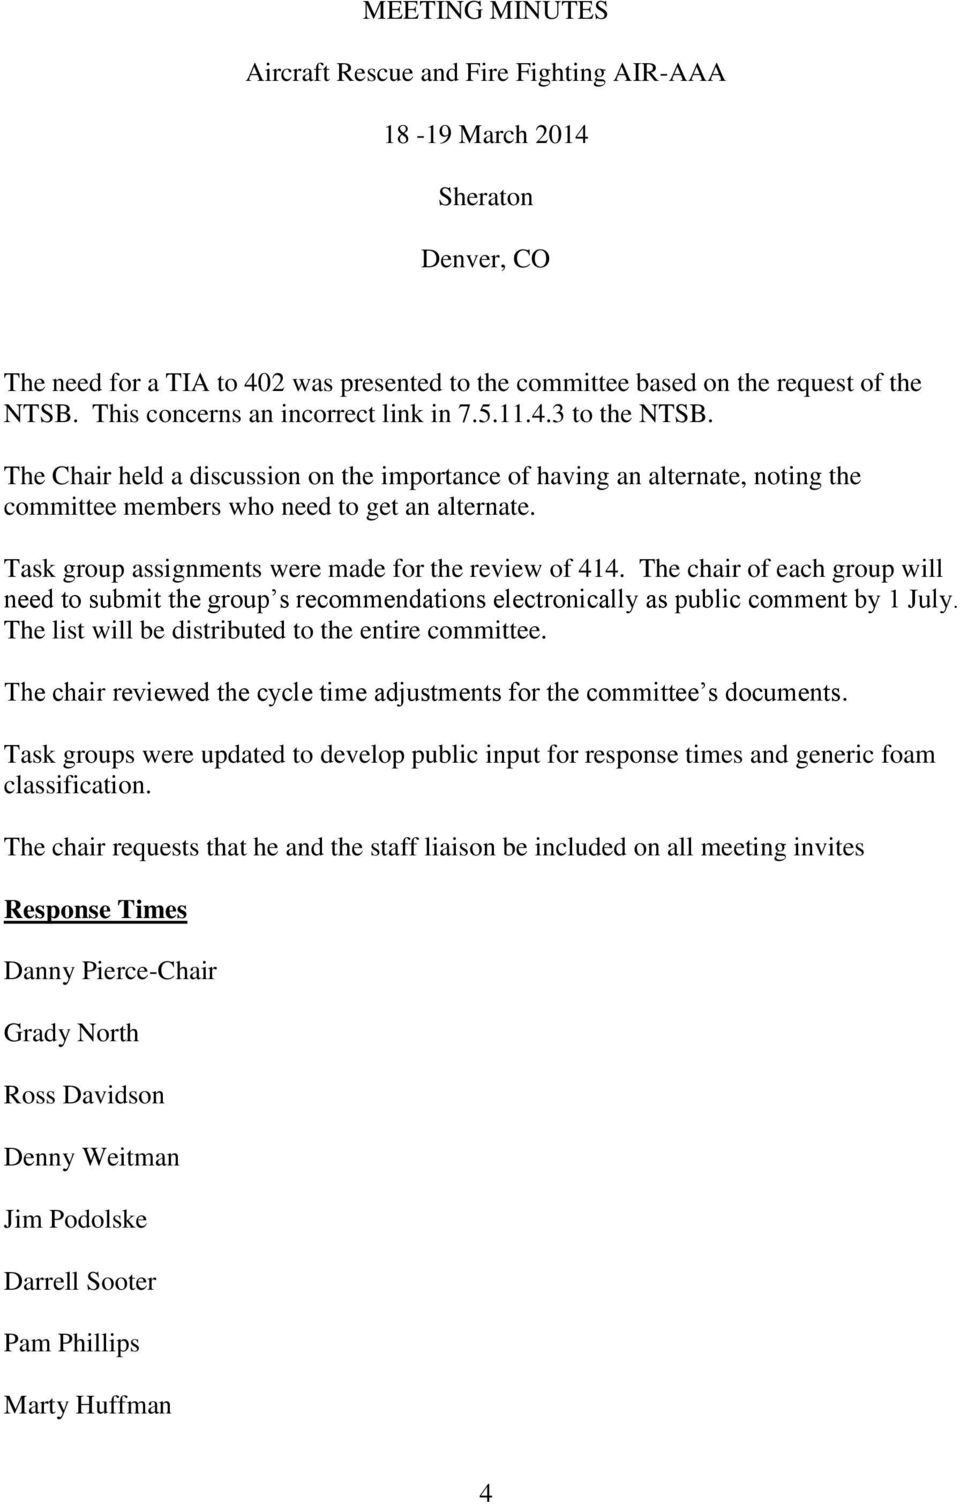 The chair of each group will need to submit the group s recommendations electronically as public comment by 1 July. The list will be distributed to the entire committee.